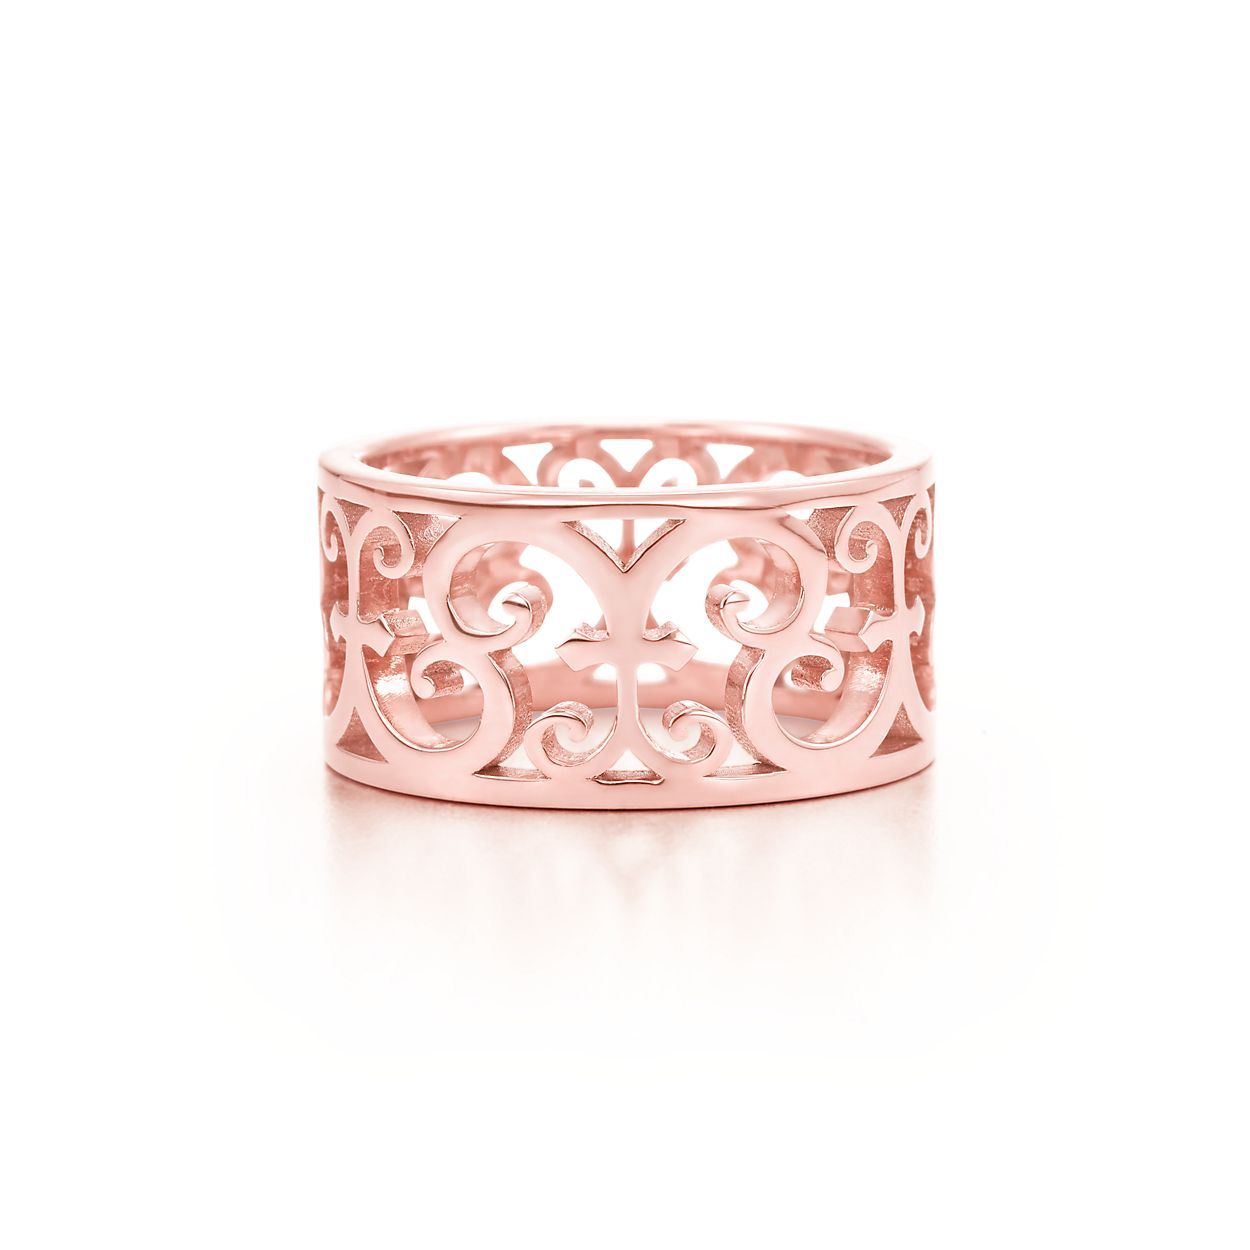 Tiffany Enchant® wide ring in Rubedo® metal. | Tiffany & Co.